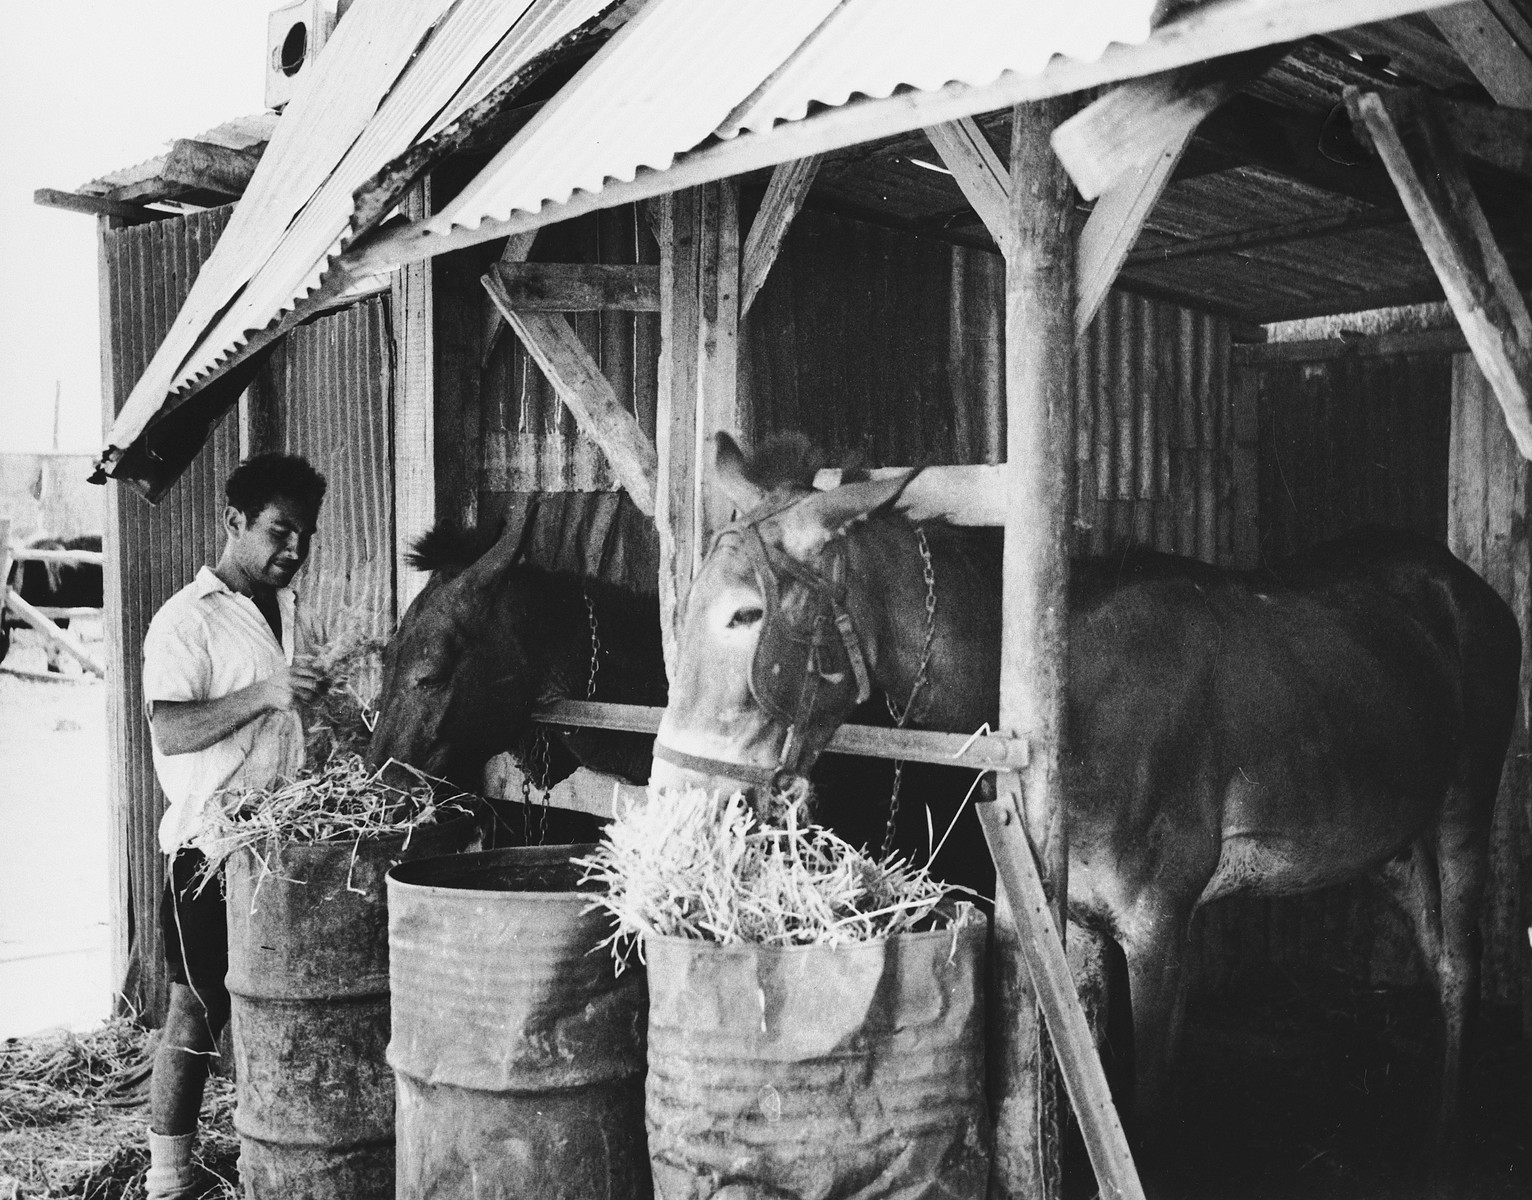 A new immigrant feeds the horses in Tal Shachar.